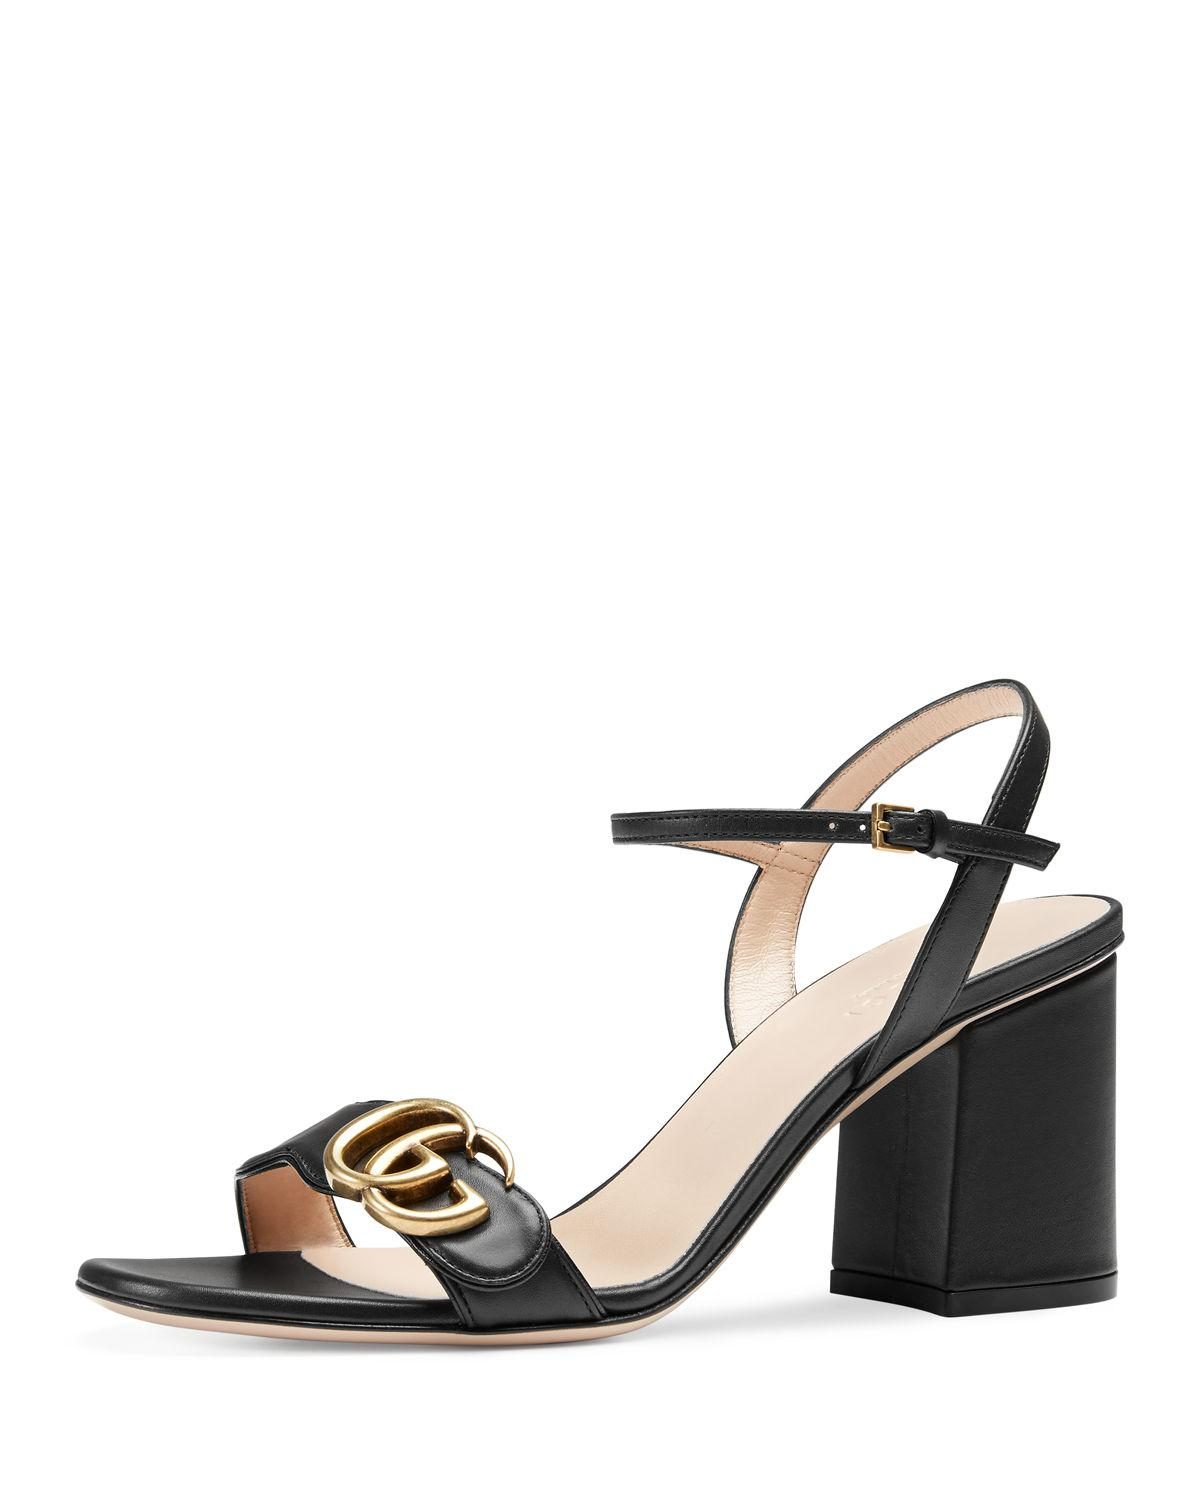 d302b3134b4e Lyst - Gucci Marmont Leather GG Block-heel Sandals in Black